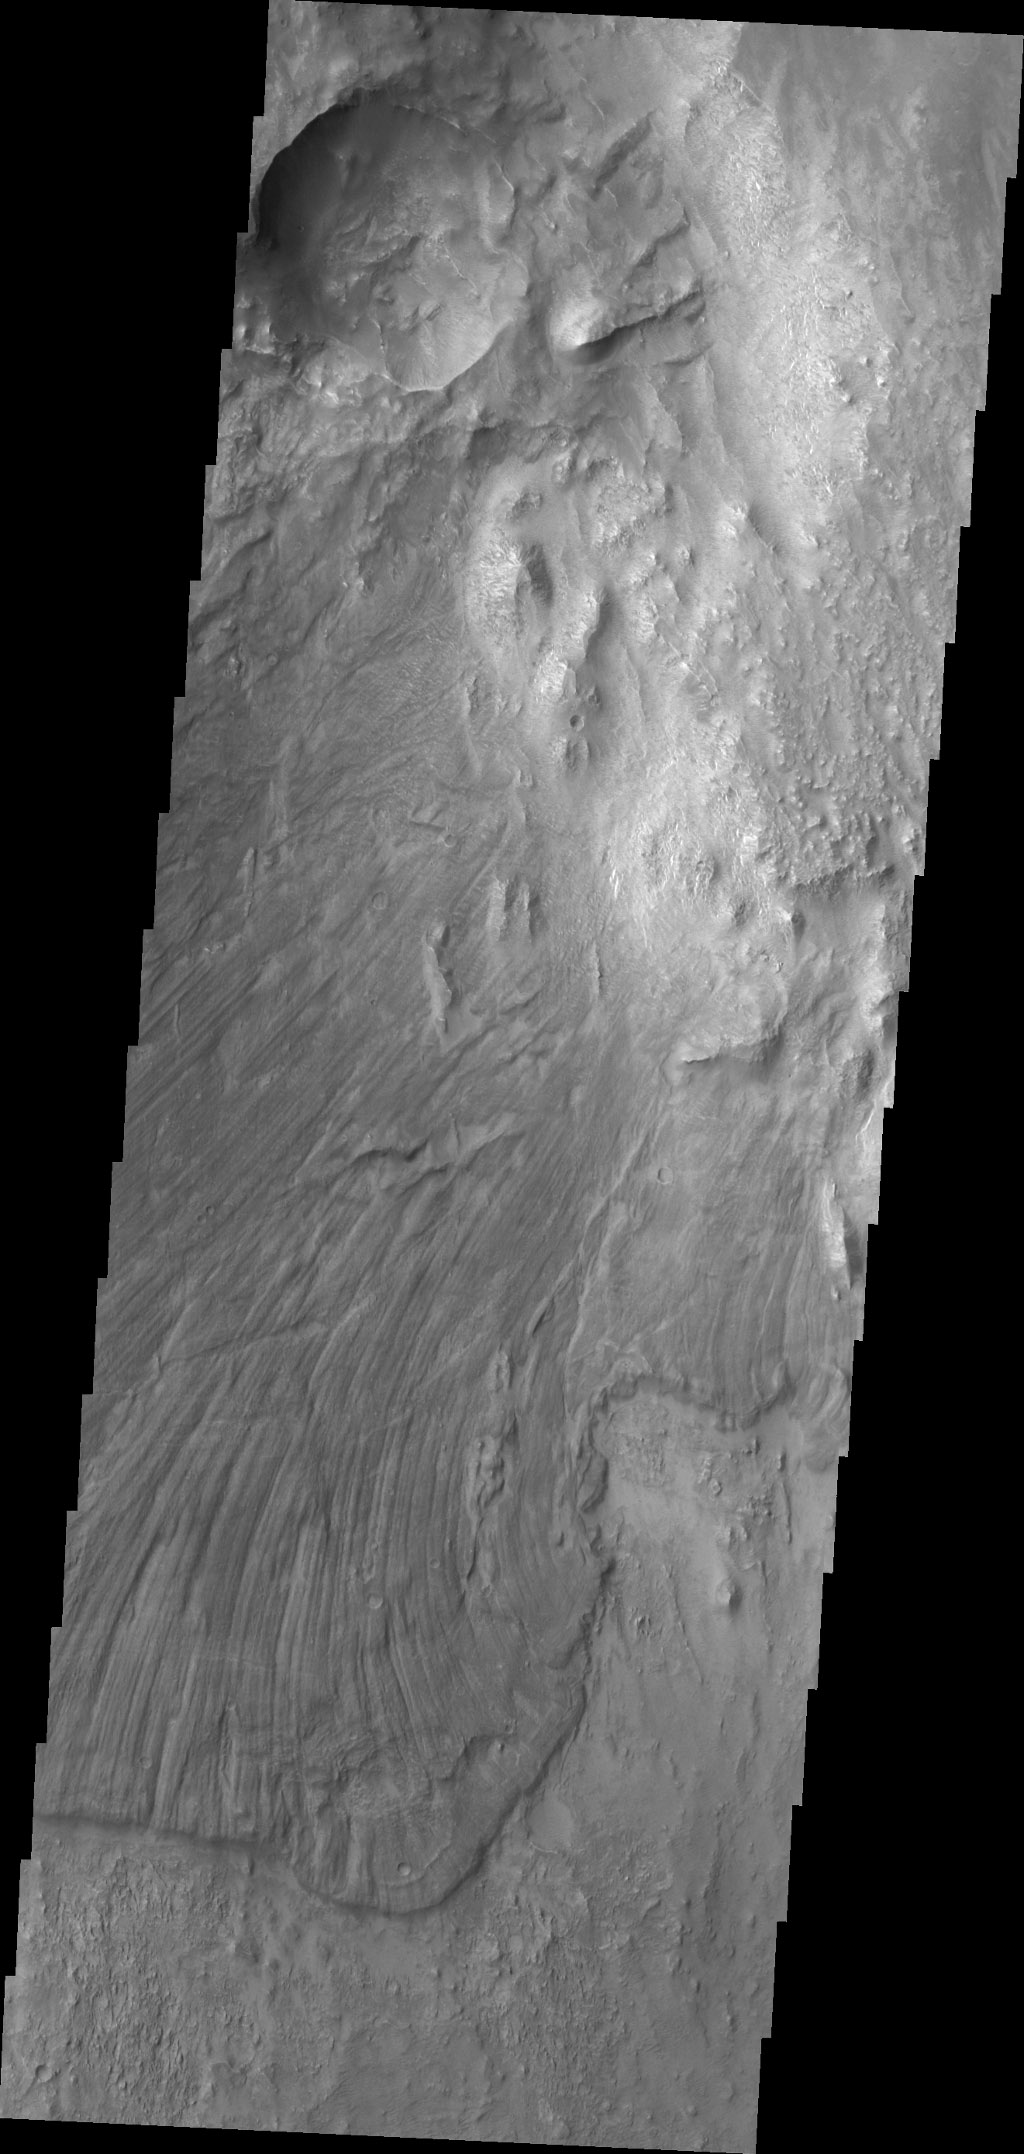 Melas Chasma is part of the largest canyon system on Mars, Valles Marineris. This image captured by NASA's 2001 Mars Odyssey spacecraft is located along the northern side of the chasma.